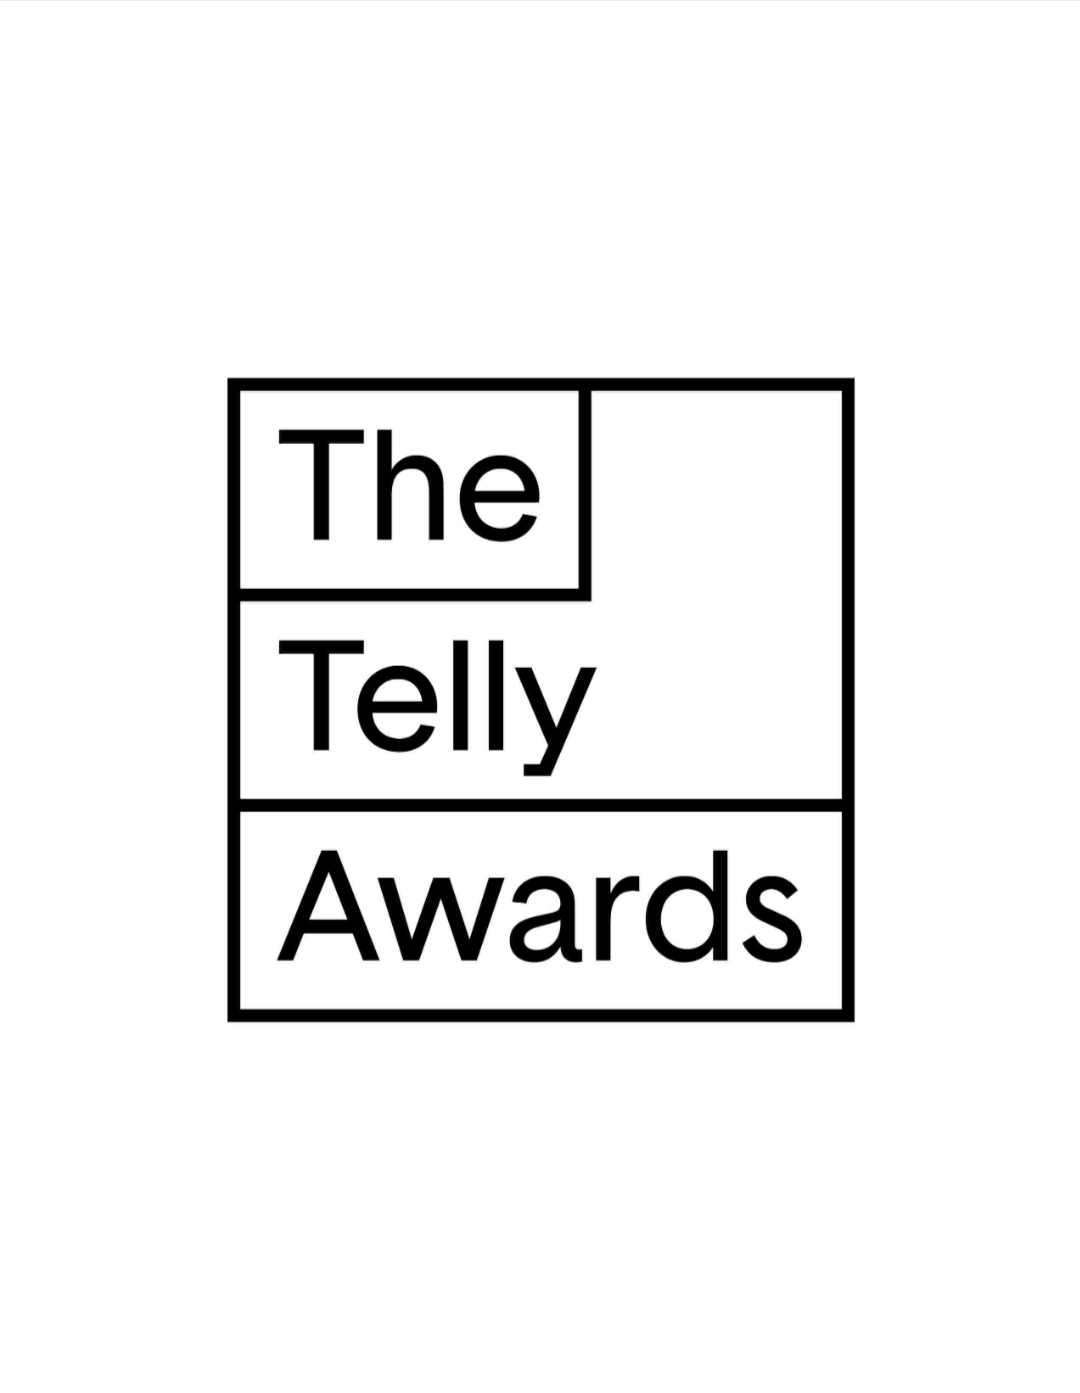 The Telly Awards